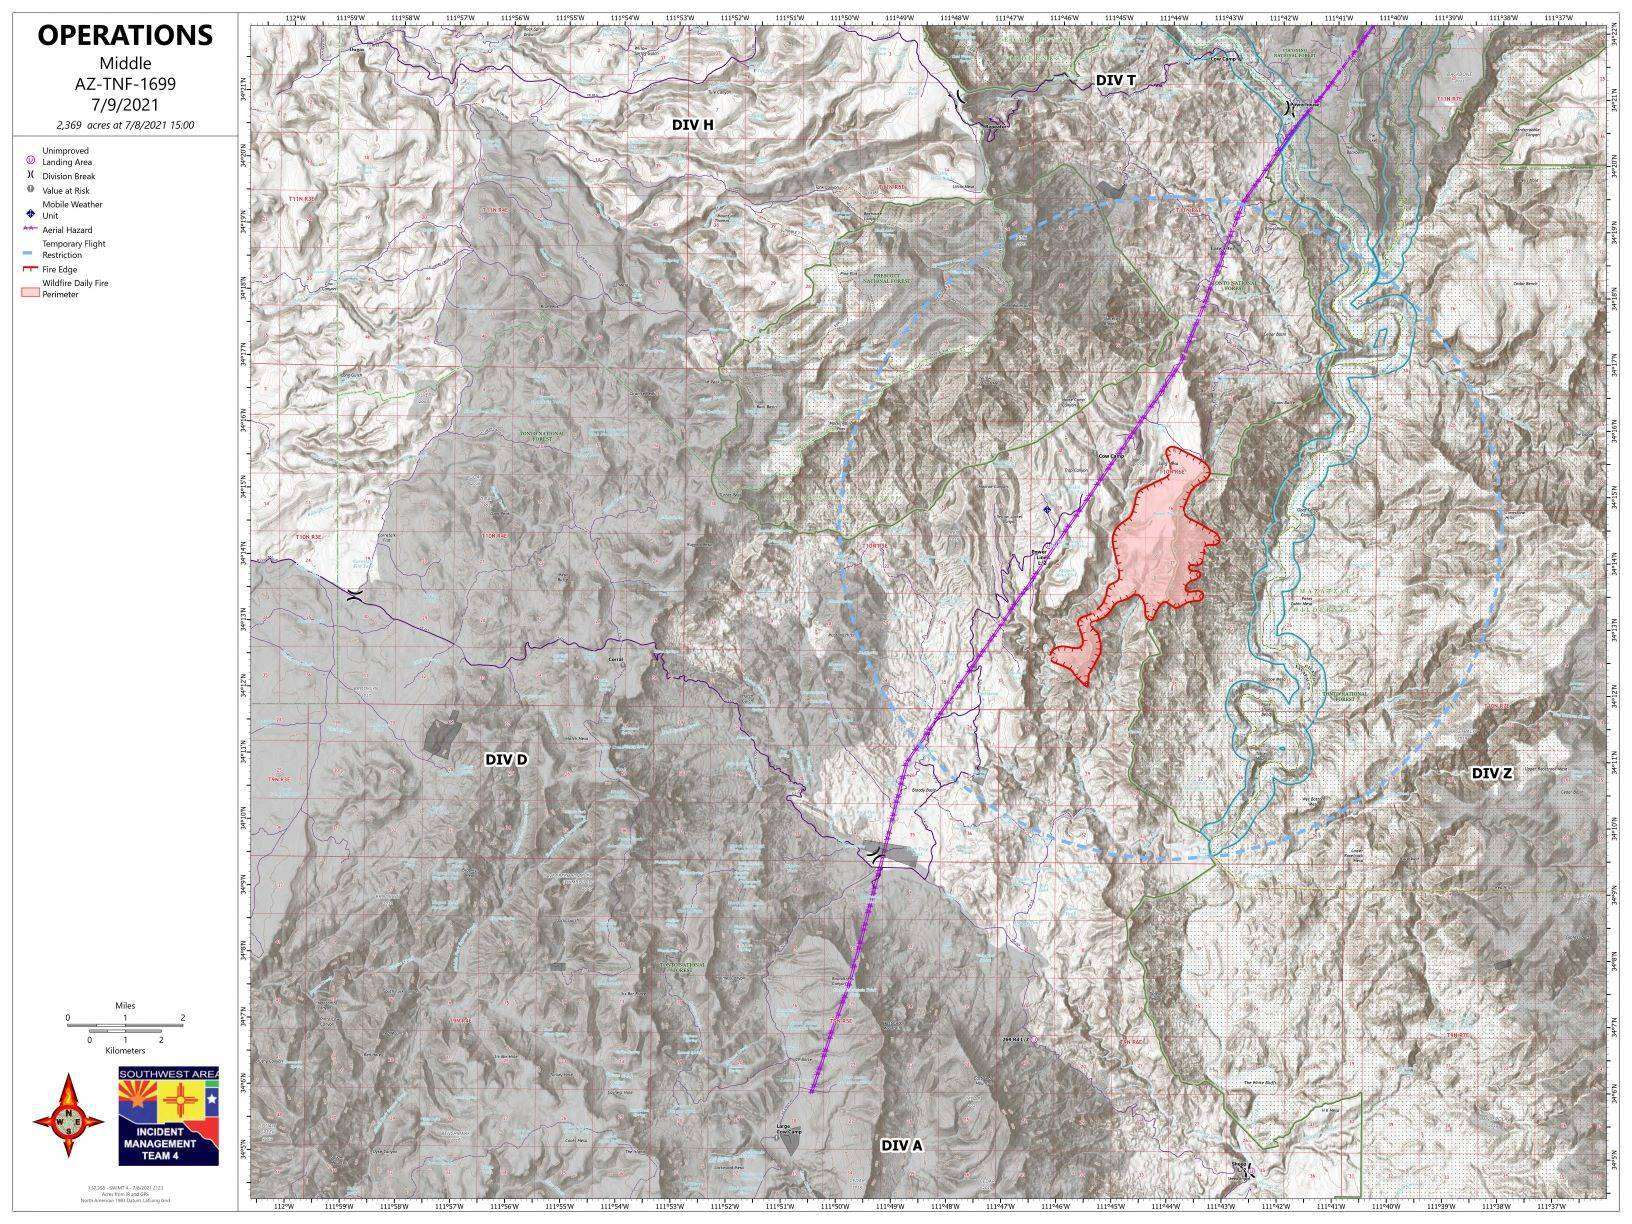 20210709_Middle Fire_Map 1.jpg